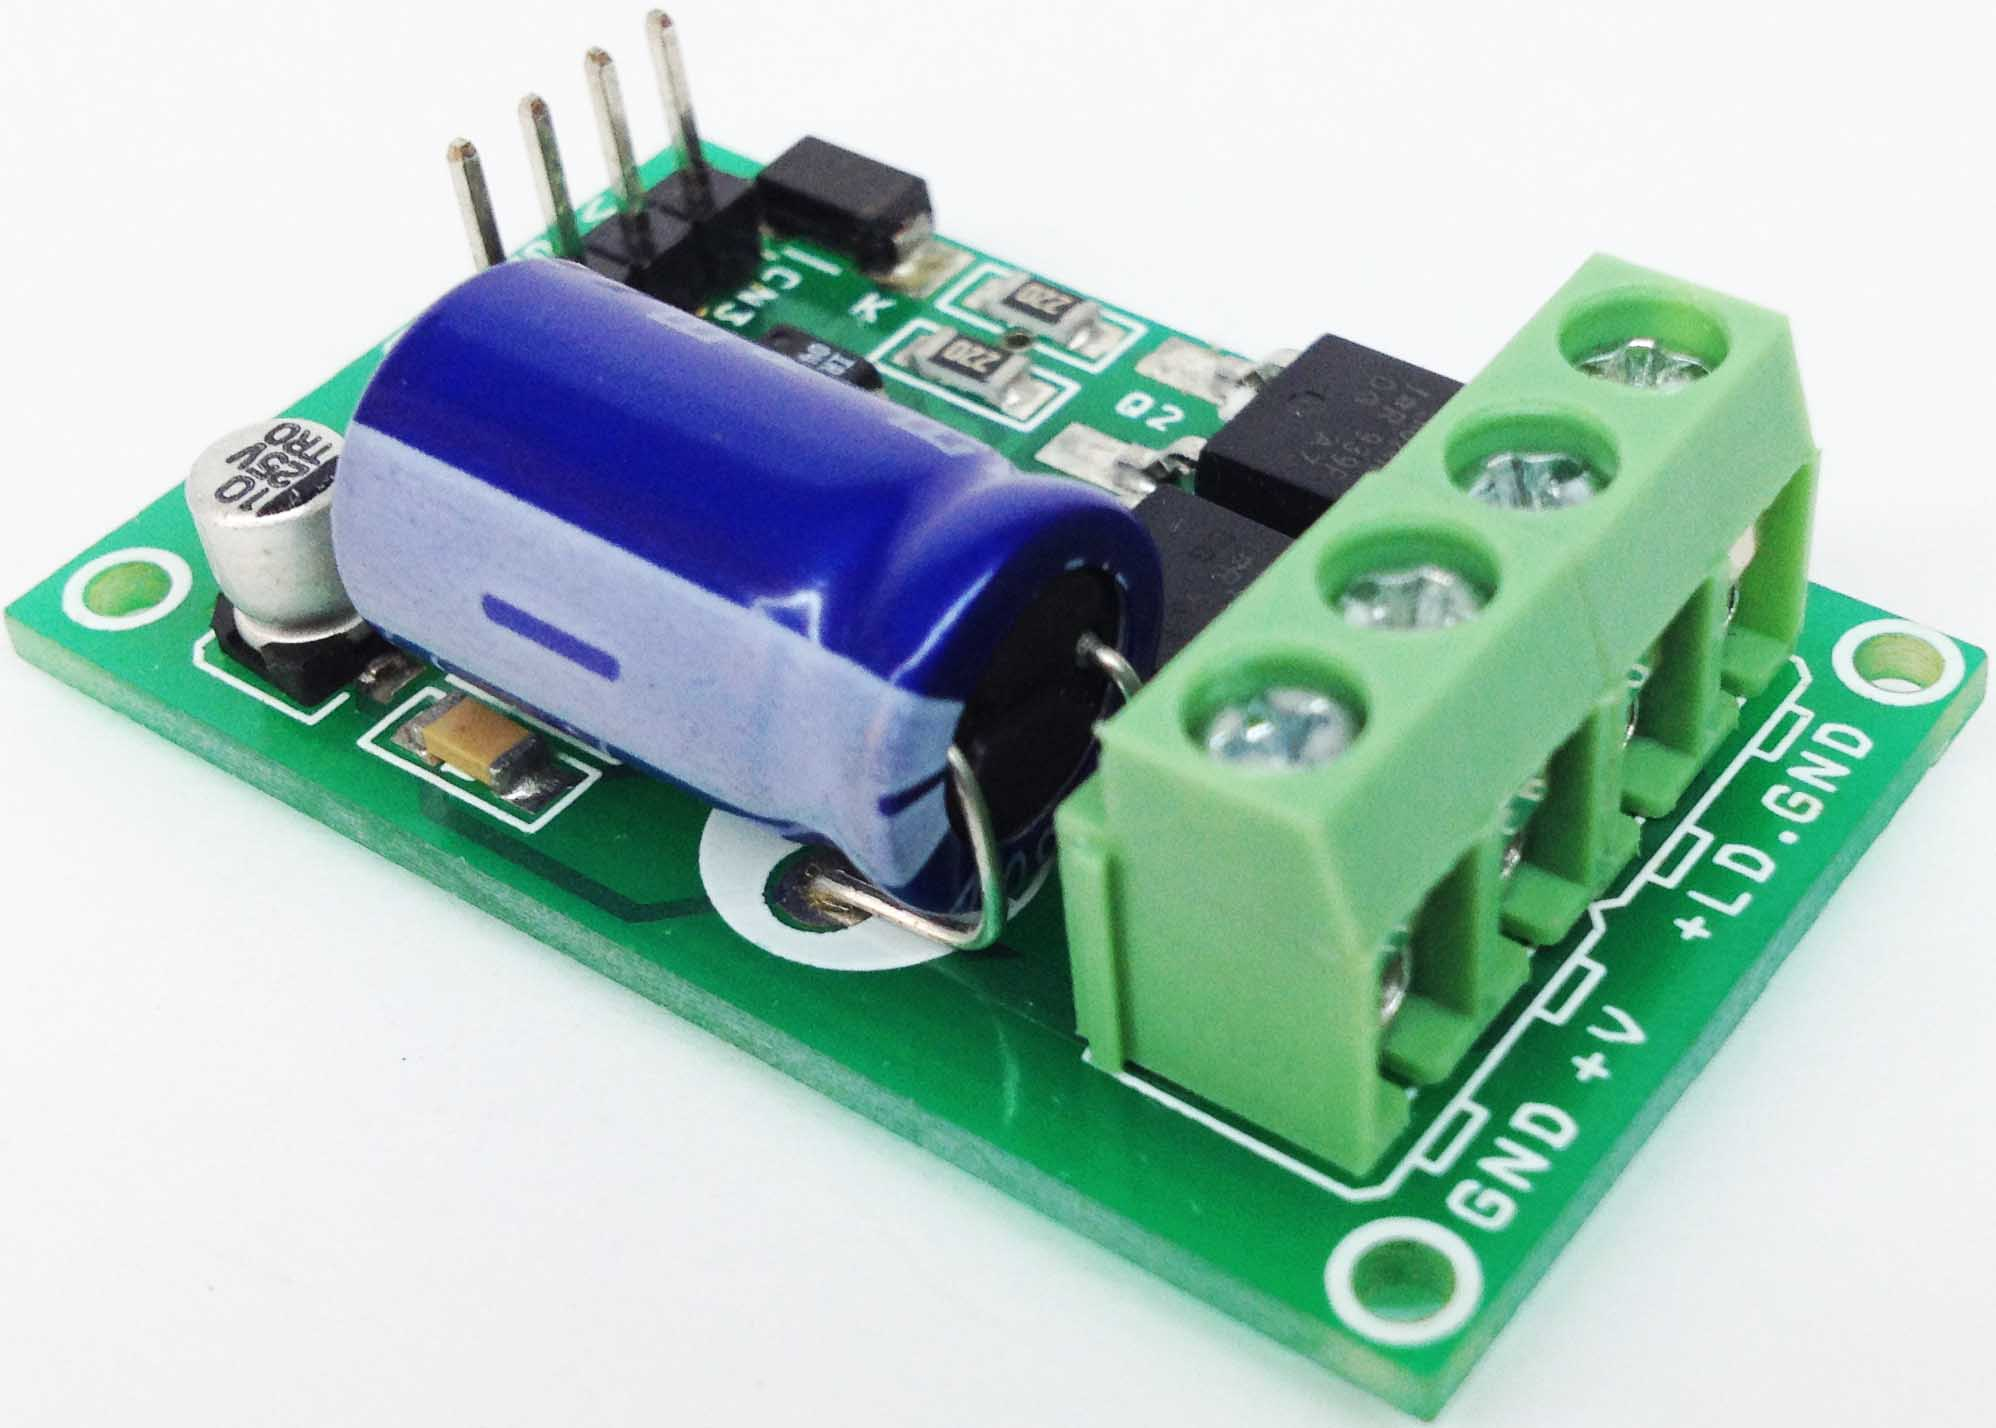 Reading Schematic in addition Robotic Cable Inspection System in addition 63708 How To Build A Low Cost High Efficiency Inverter additionally Document additionally Difference Between A Mag ic Field Sensor And A Hall Effect Sensor. on dc motor monitor